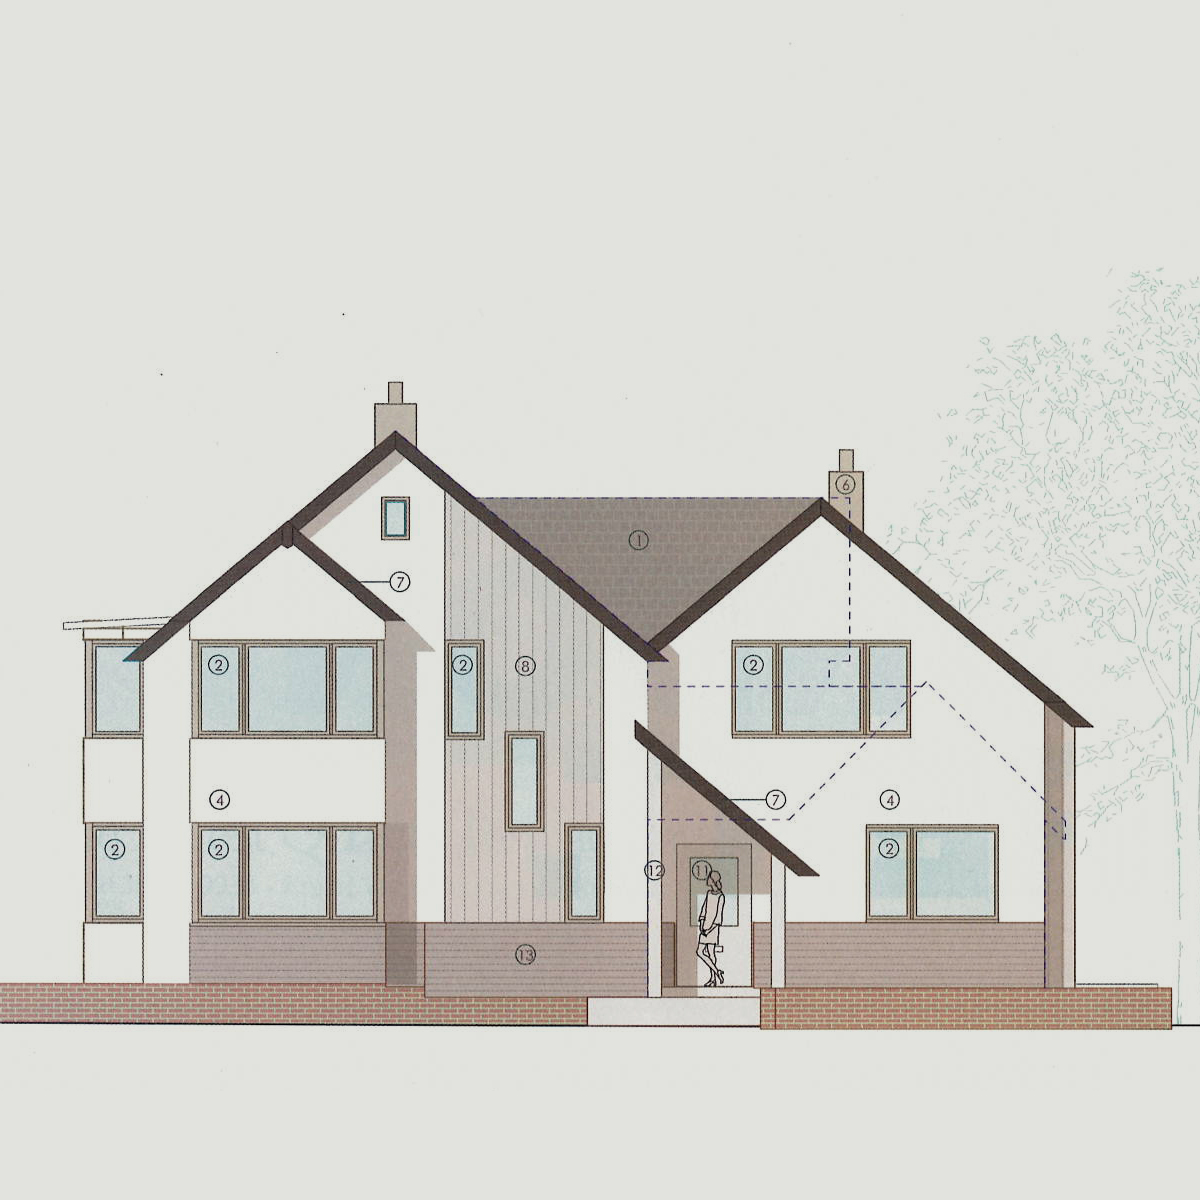 planning approved for two storey extension and external makeover in hove